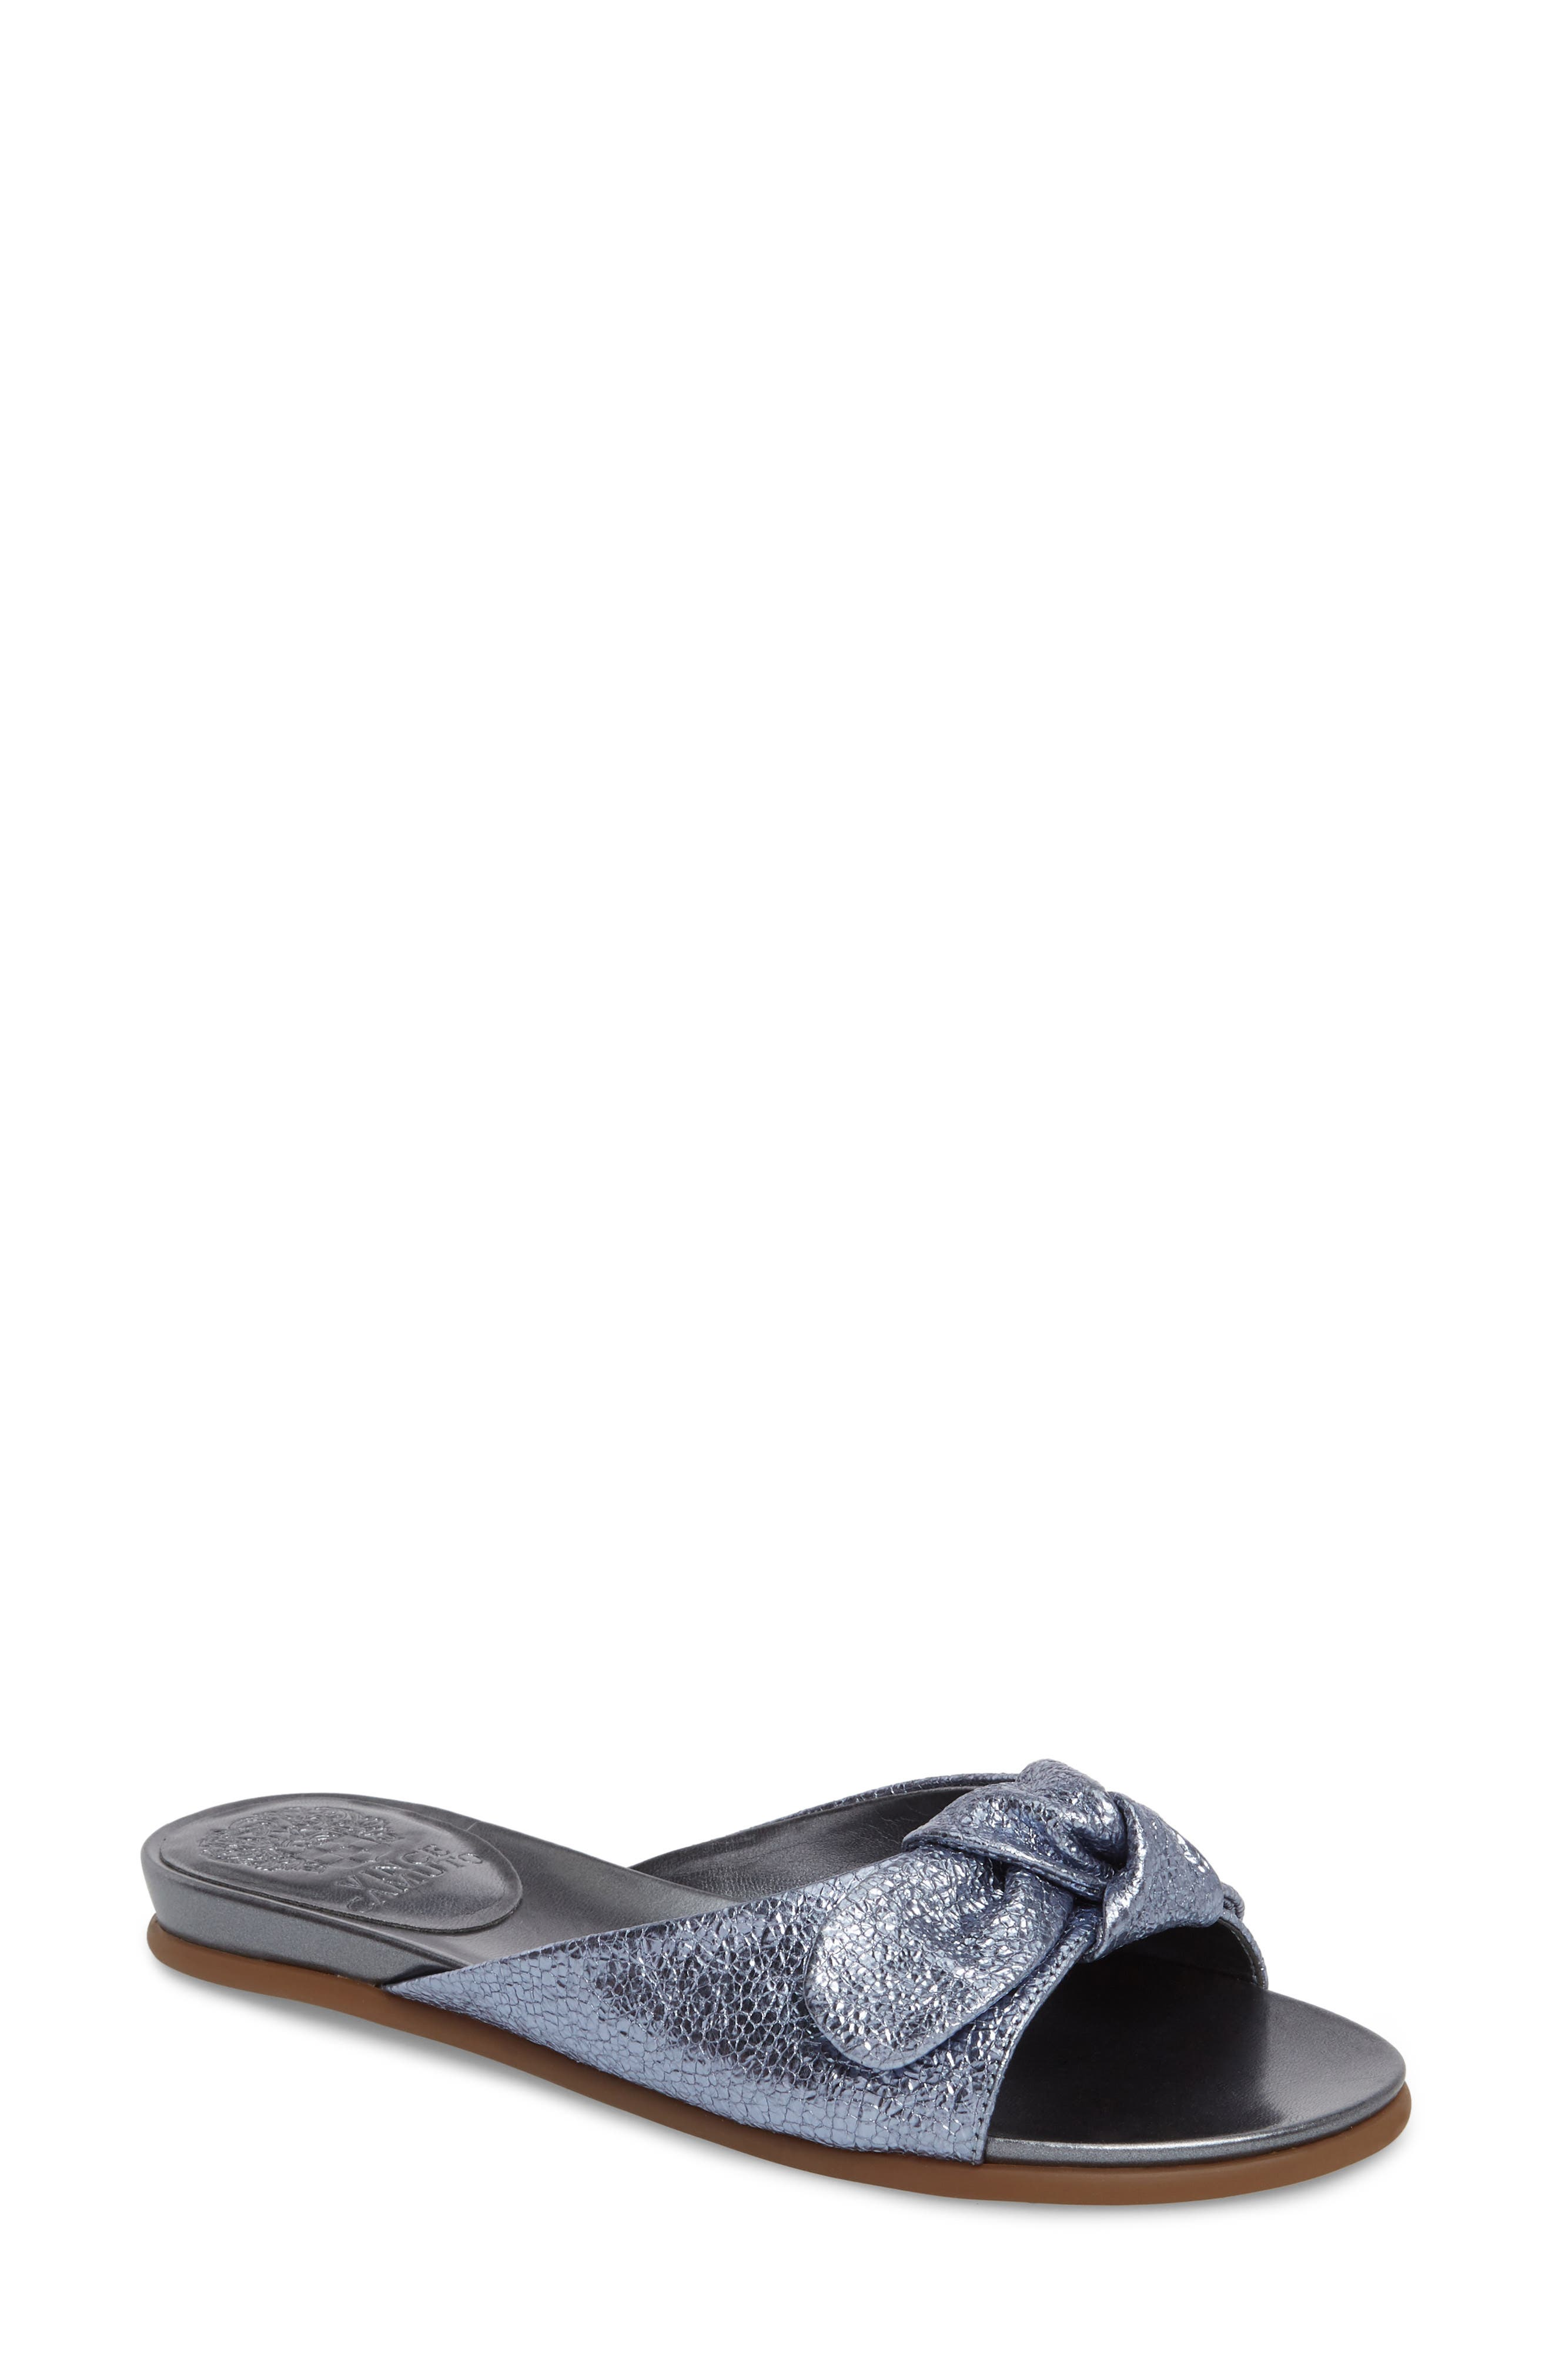 Ejella Slide Sandal,                         Main,                         color, COOL BLUE FABRIC